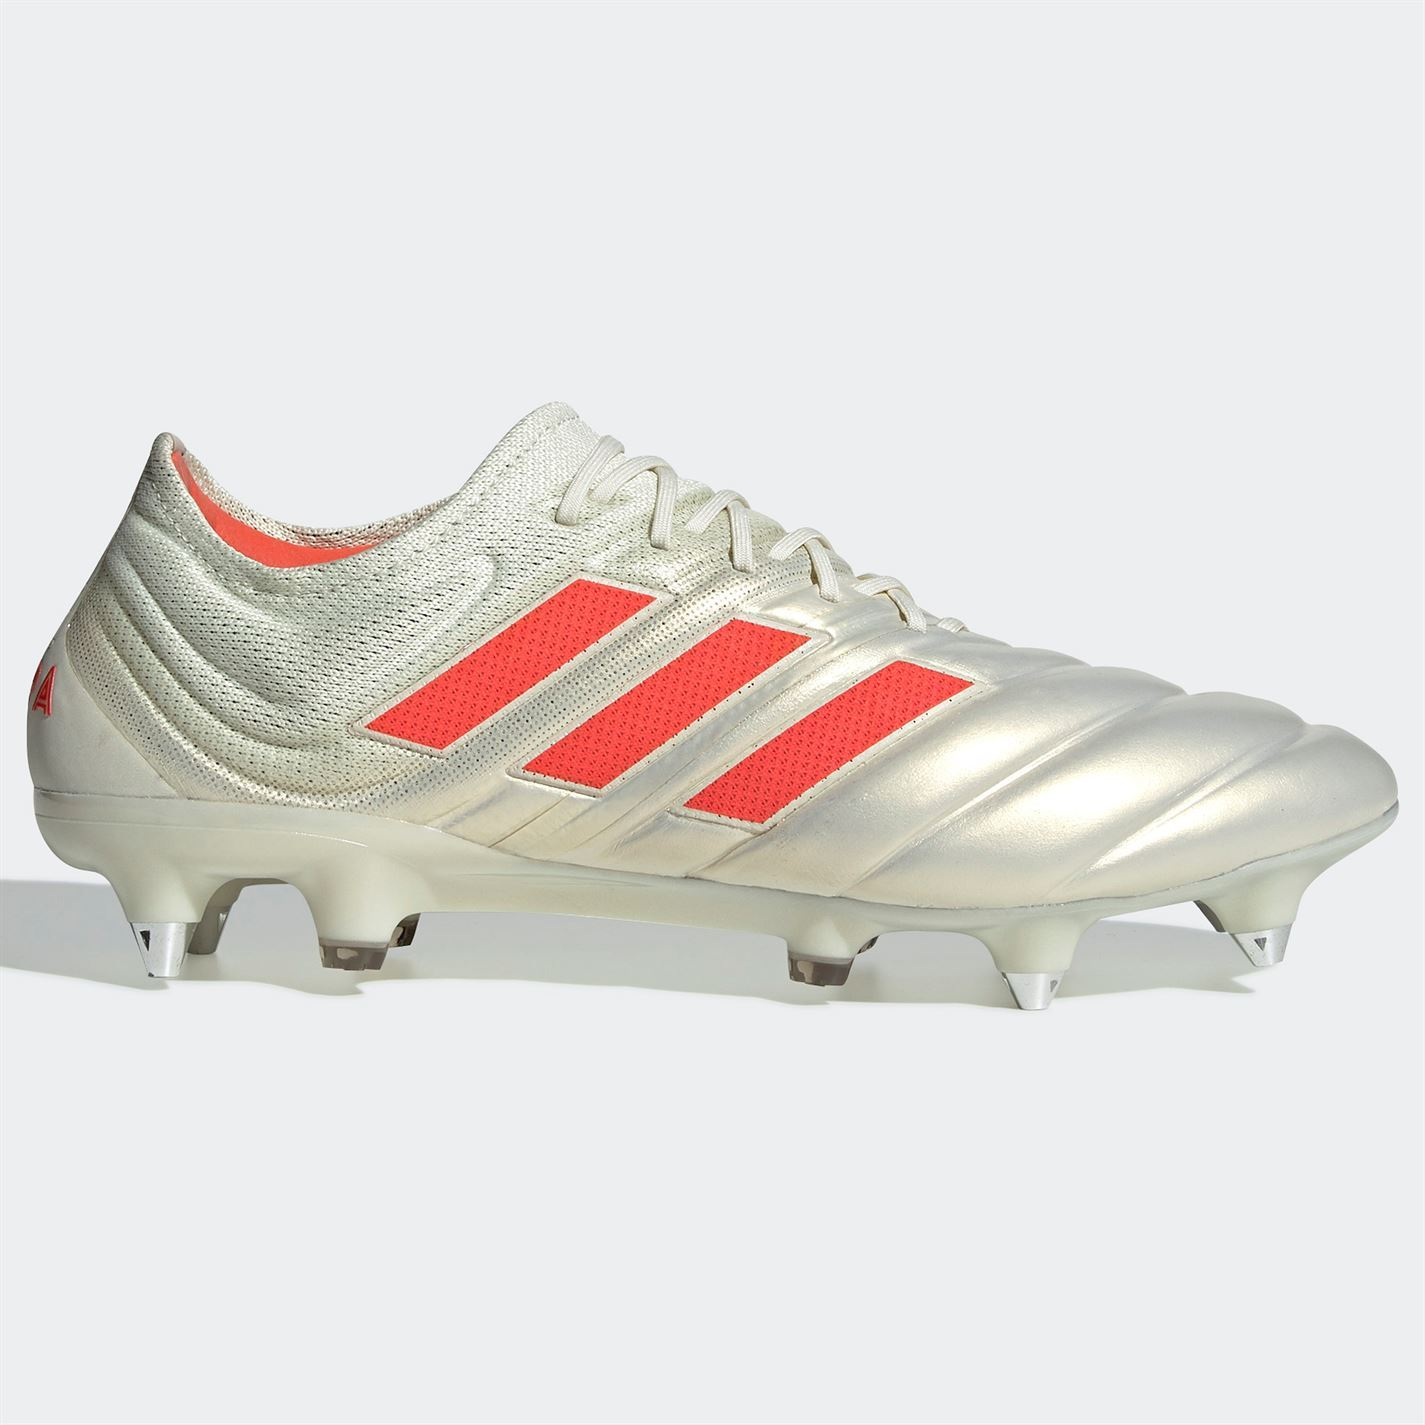 6cf189f553 Details about adidas Copa 19.1 SG Soft Ground Football Boots Mens White/Red  Soccer Shoe Cleats